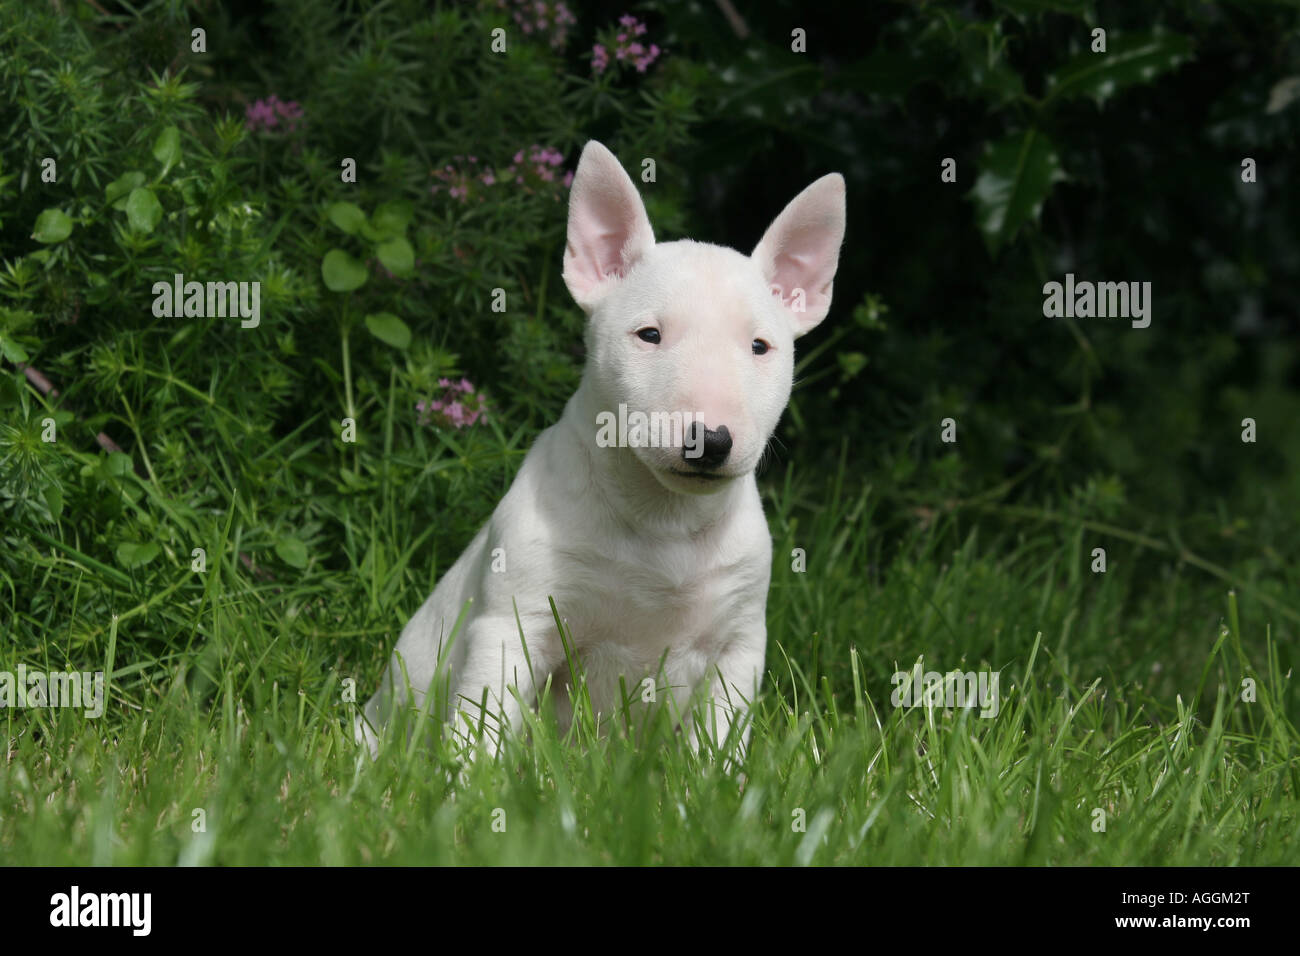 Dog English Bull-Terrier Miniature Puppy - Stock Image